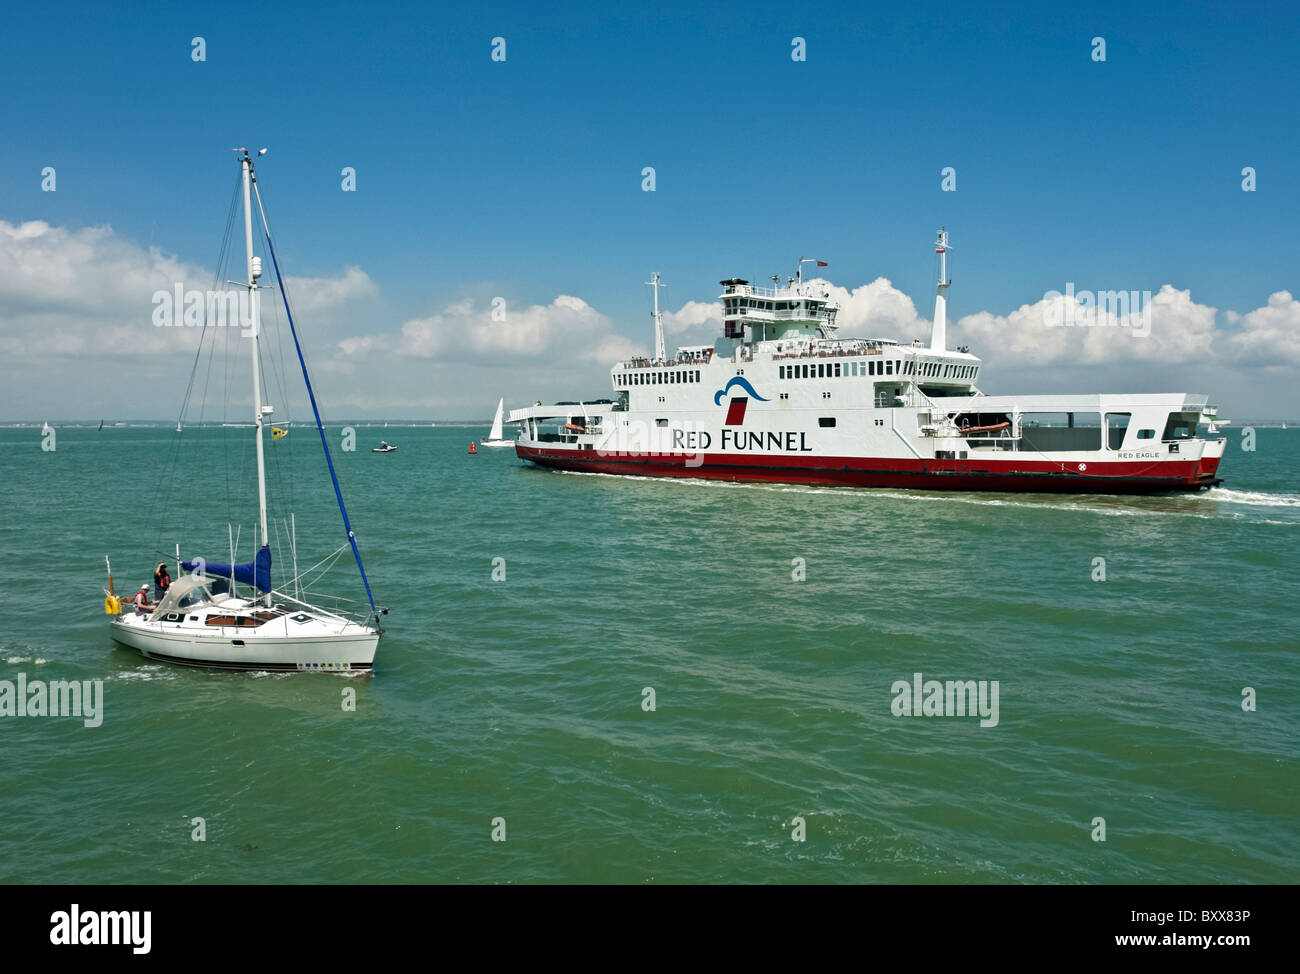 A sailing boat passes Red Funnel ferry Red Eagle in the Solent off Cowes in the Isle of Wight England - Stock Image